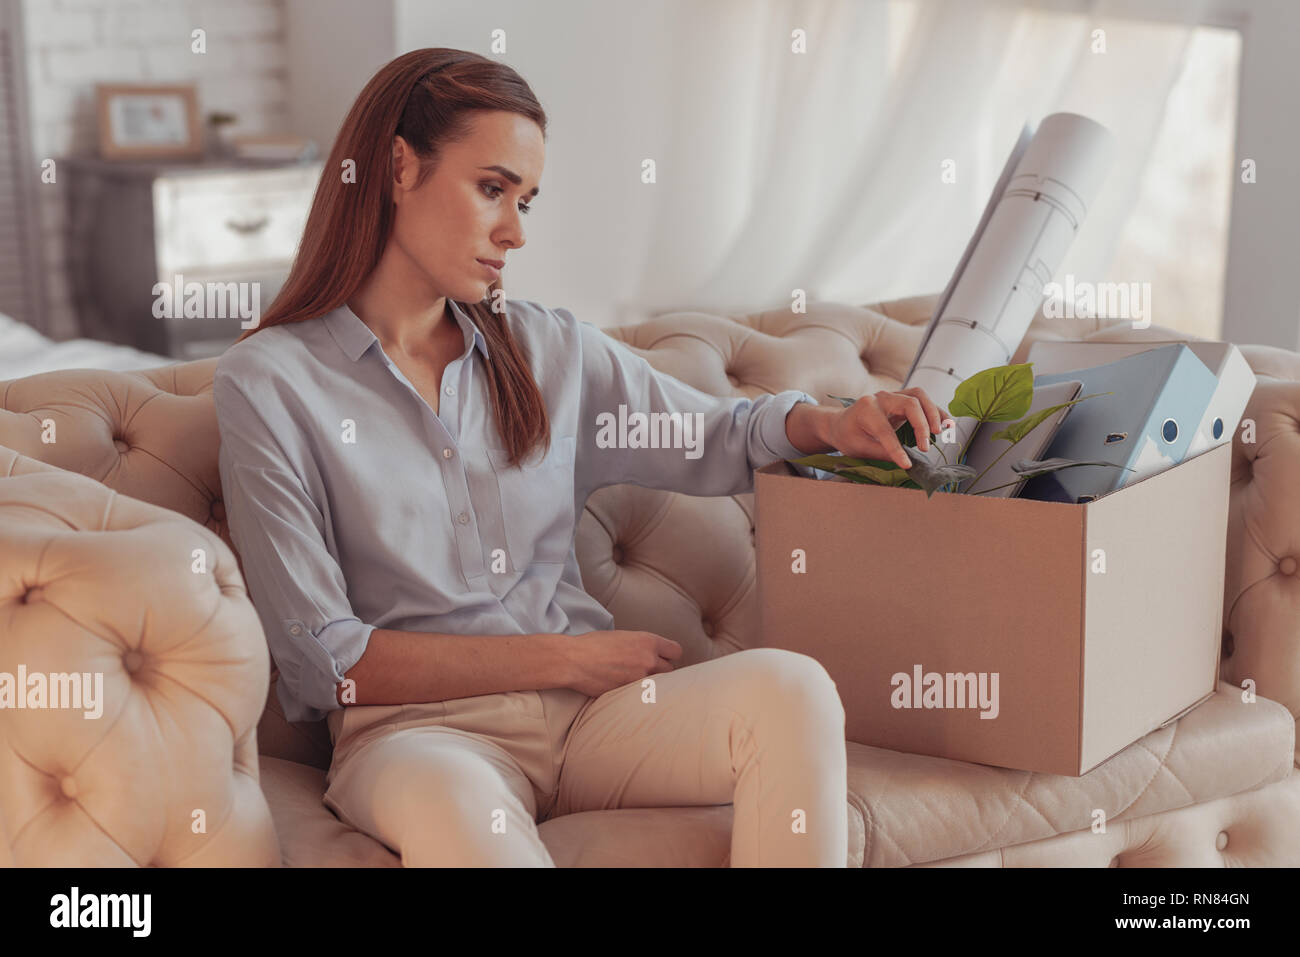 Again unemployed. Young dispirited woman sitting on sofa and being lost in thoughts while touching a box with her office property - Stock Image